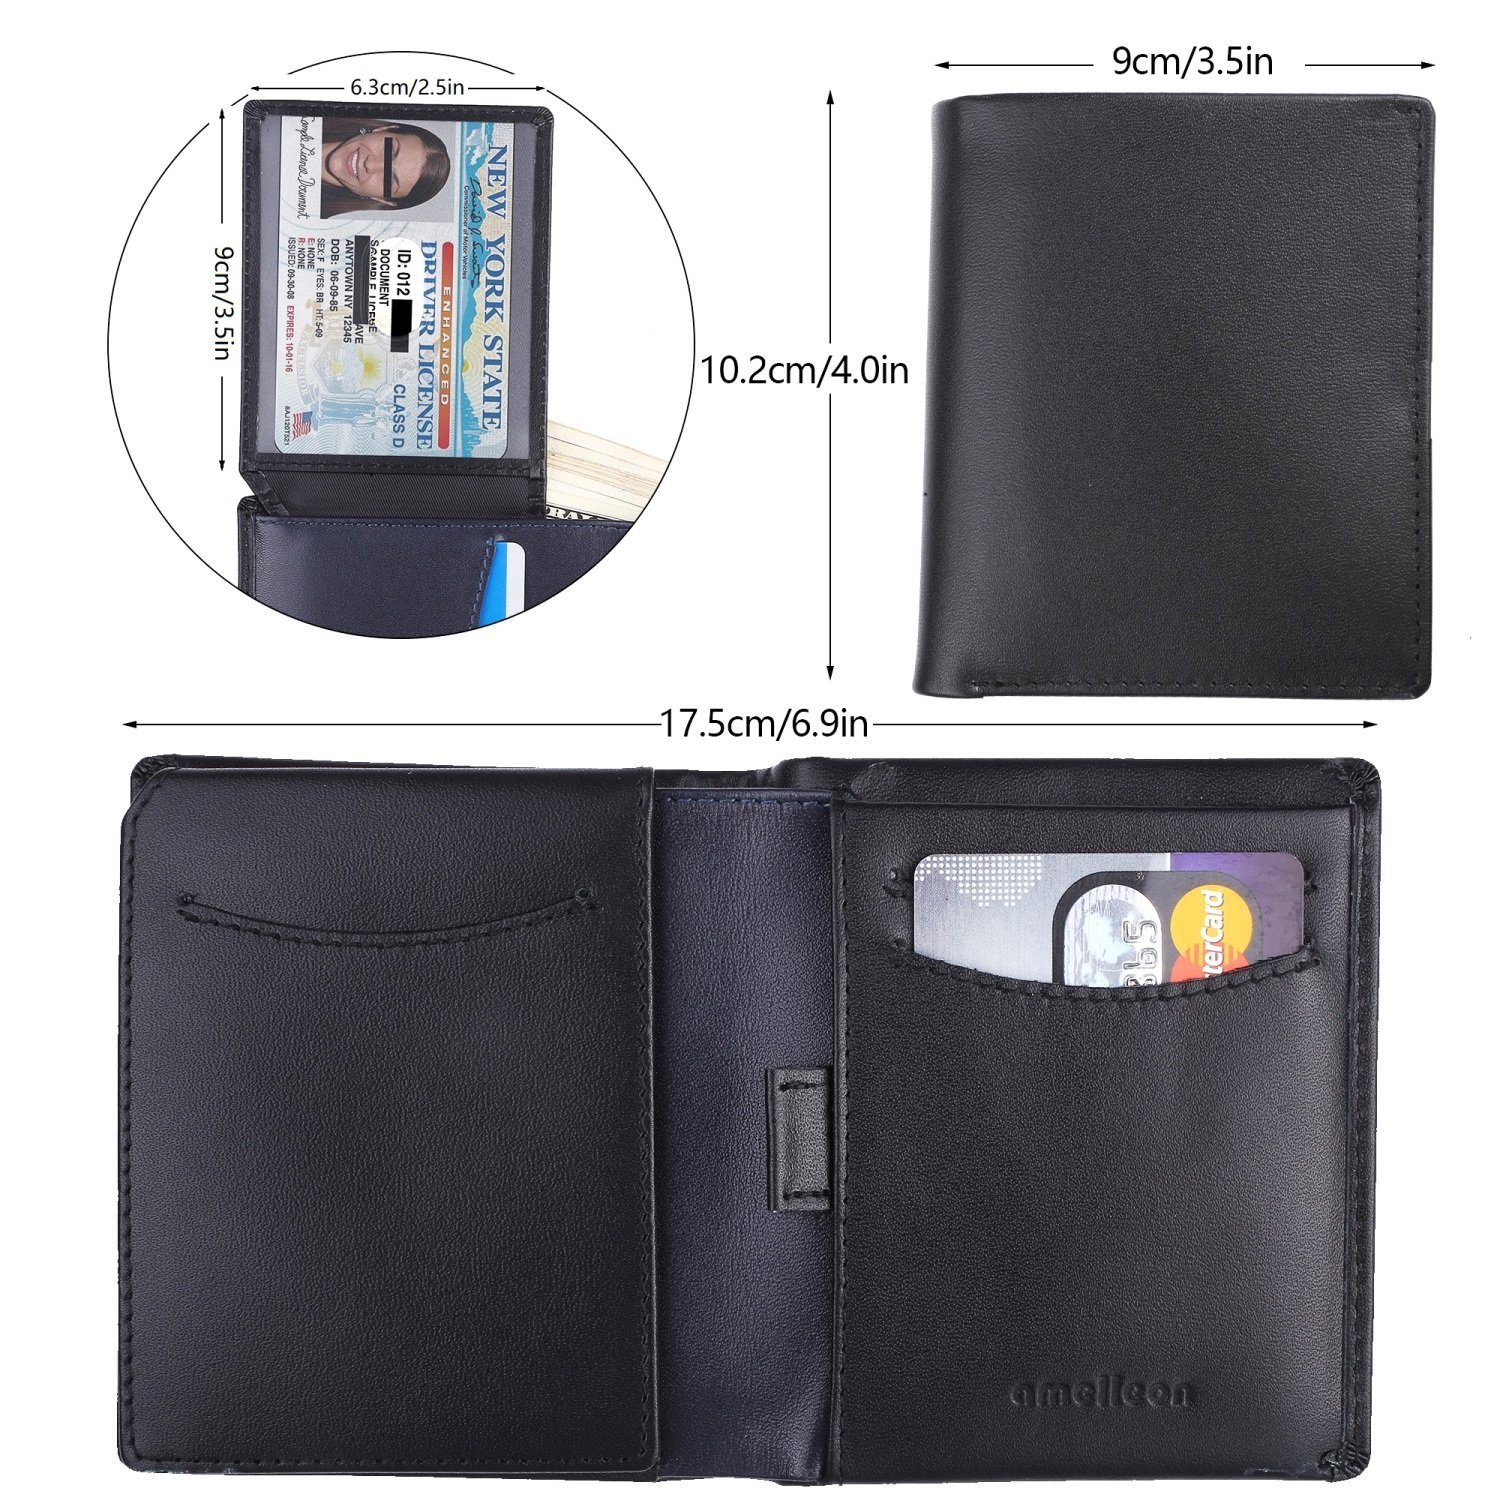 Amelleon Trifold Bifold Genuine Leather RFID Wallets for Men – ID & Photo Window,10 Credit Card Slots,Bill & Coin Pockets-For Work,Travel,Gift&More (Black) by amelleon (Image #2)